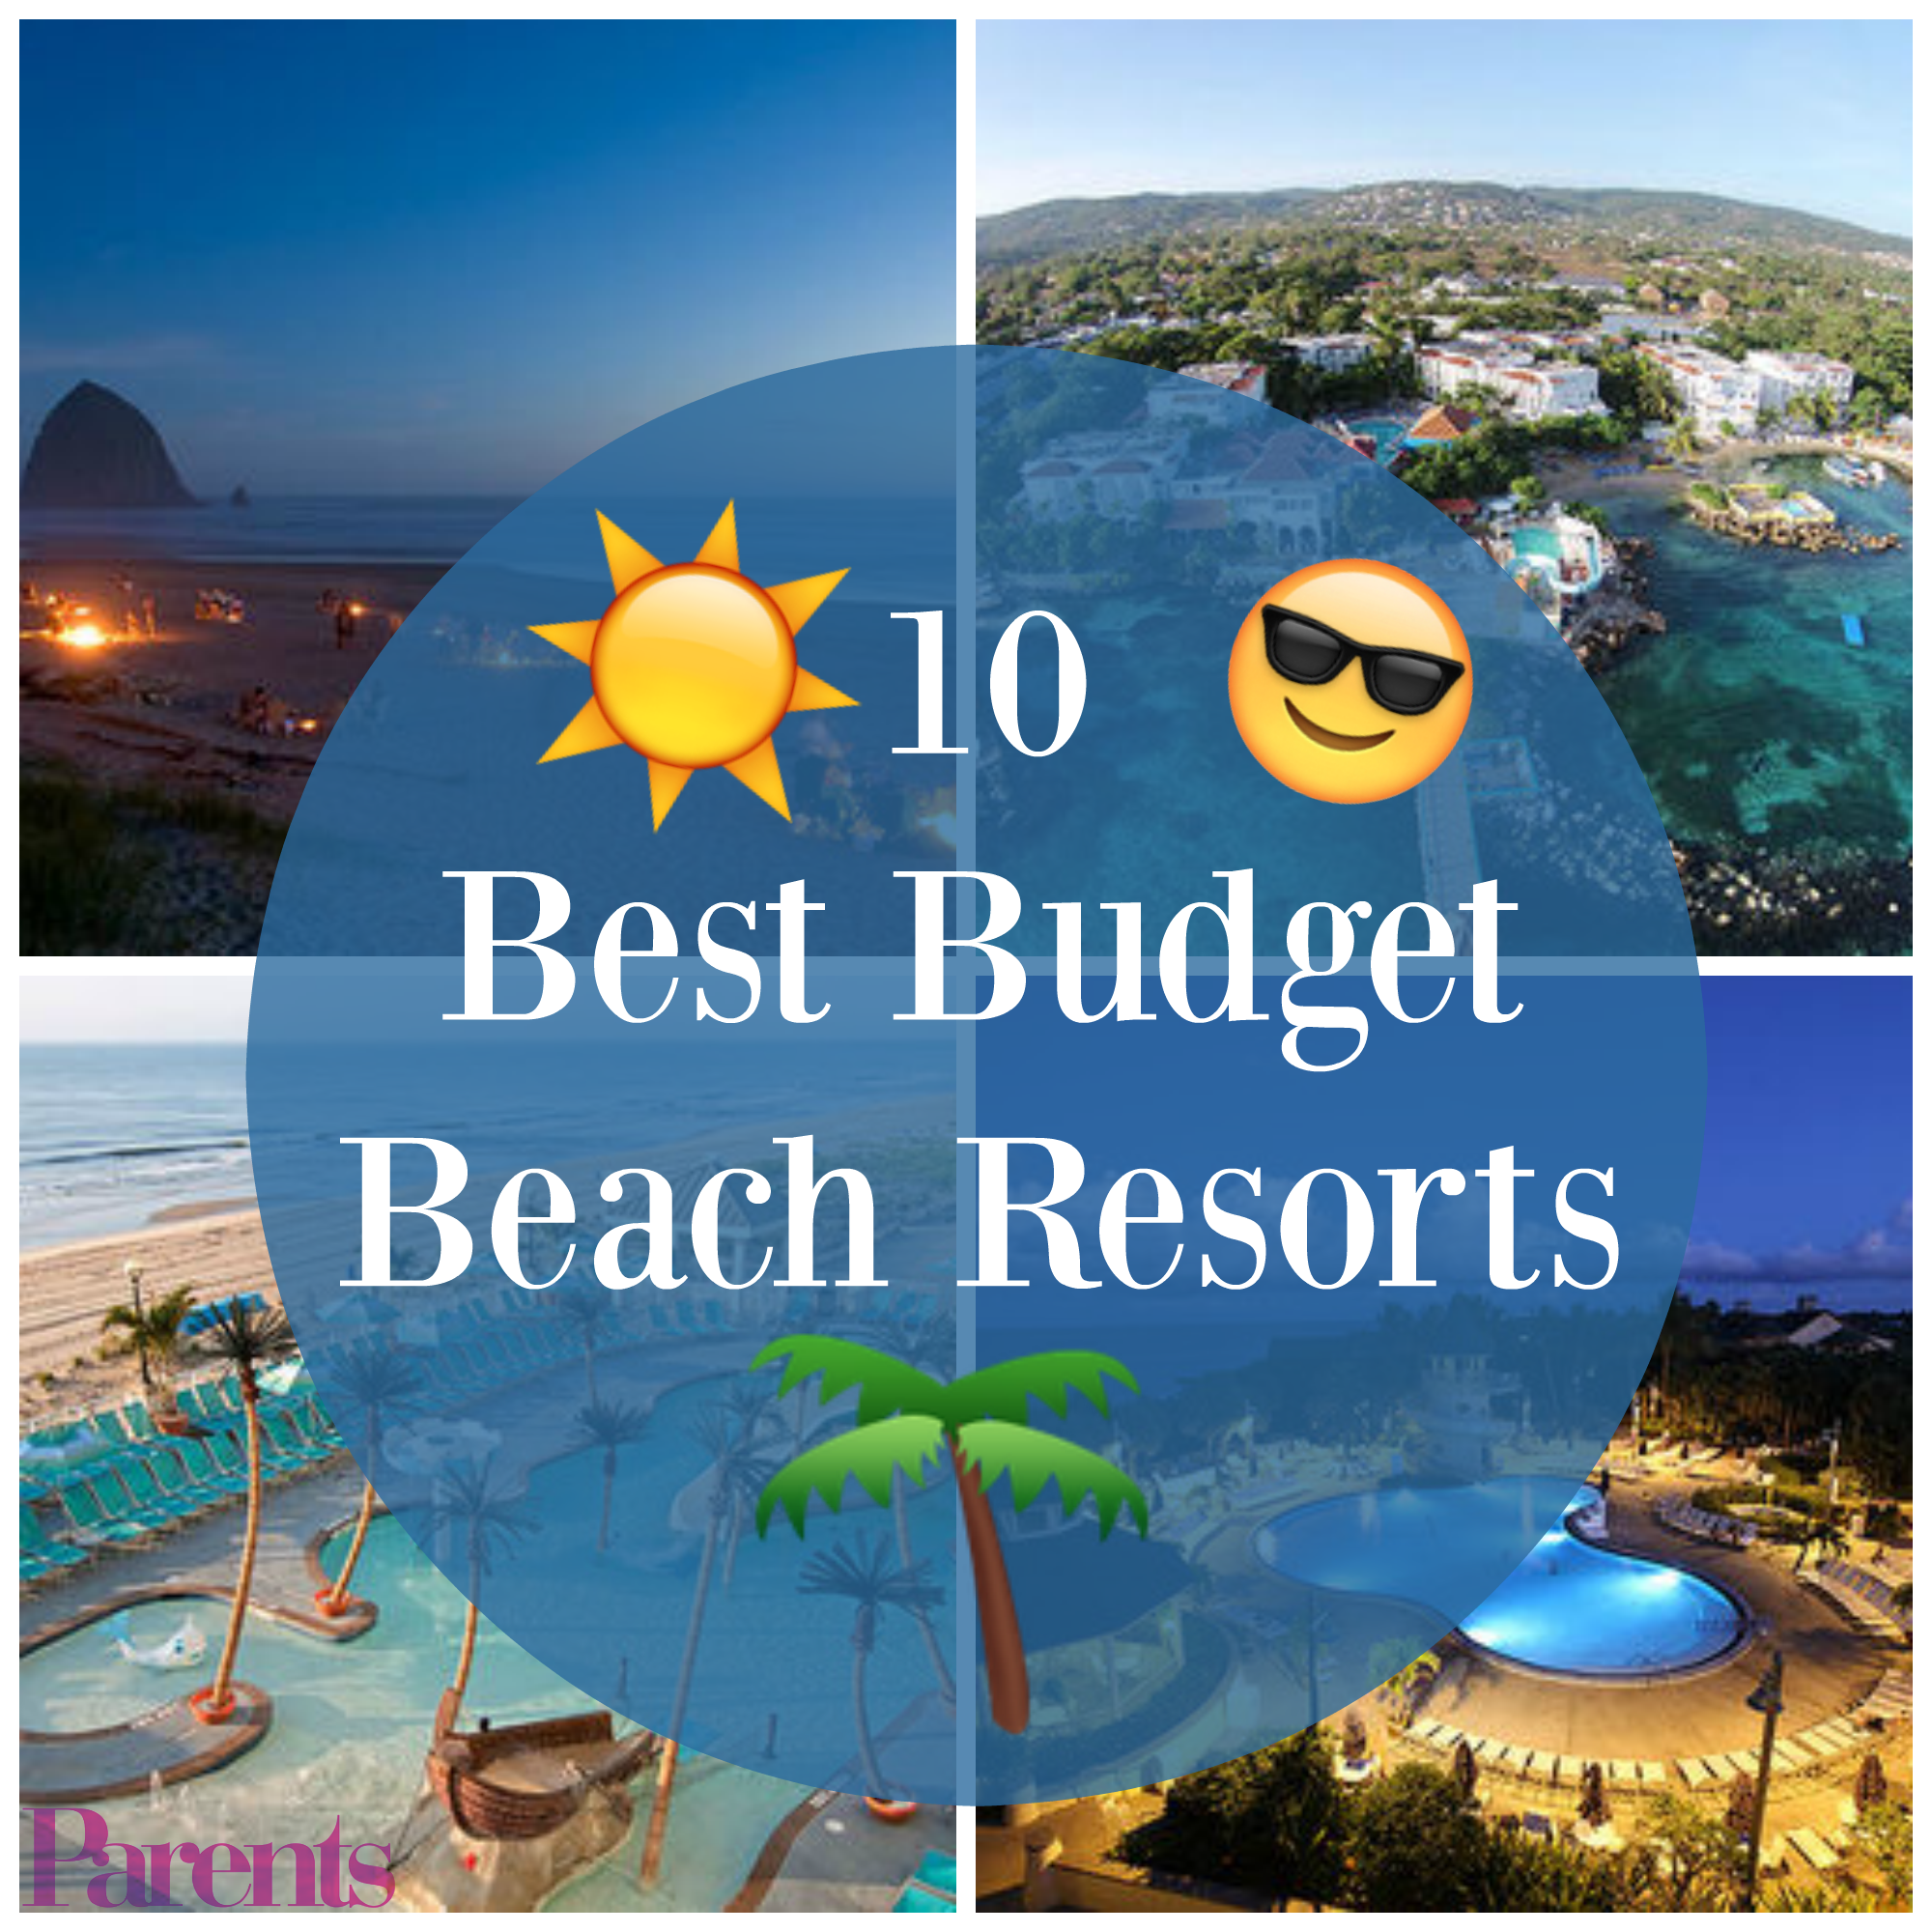 The Best Budget Beach Resorts Resorts Warm And Track Records - 10 great budget vacation destinations